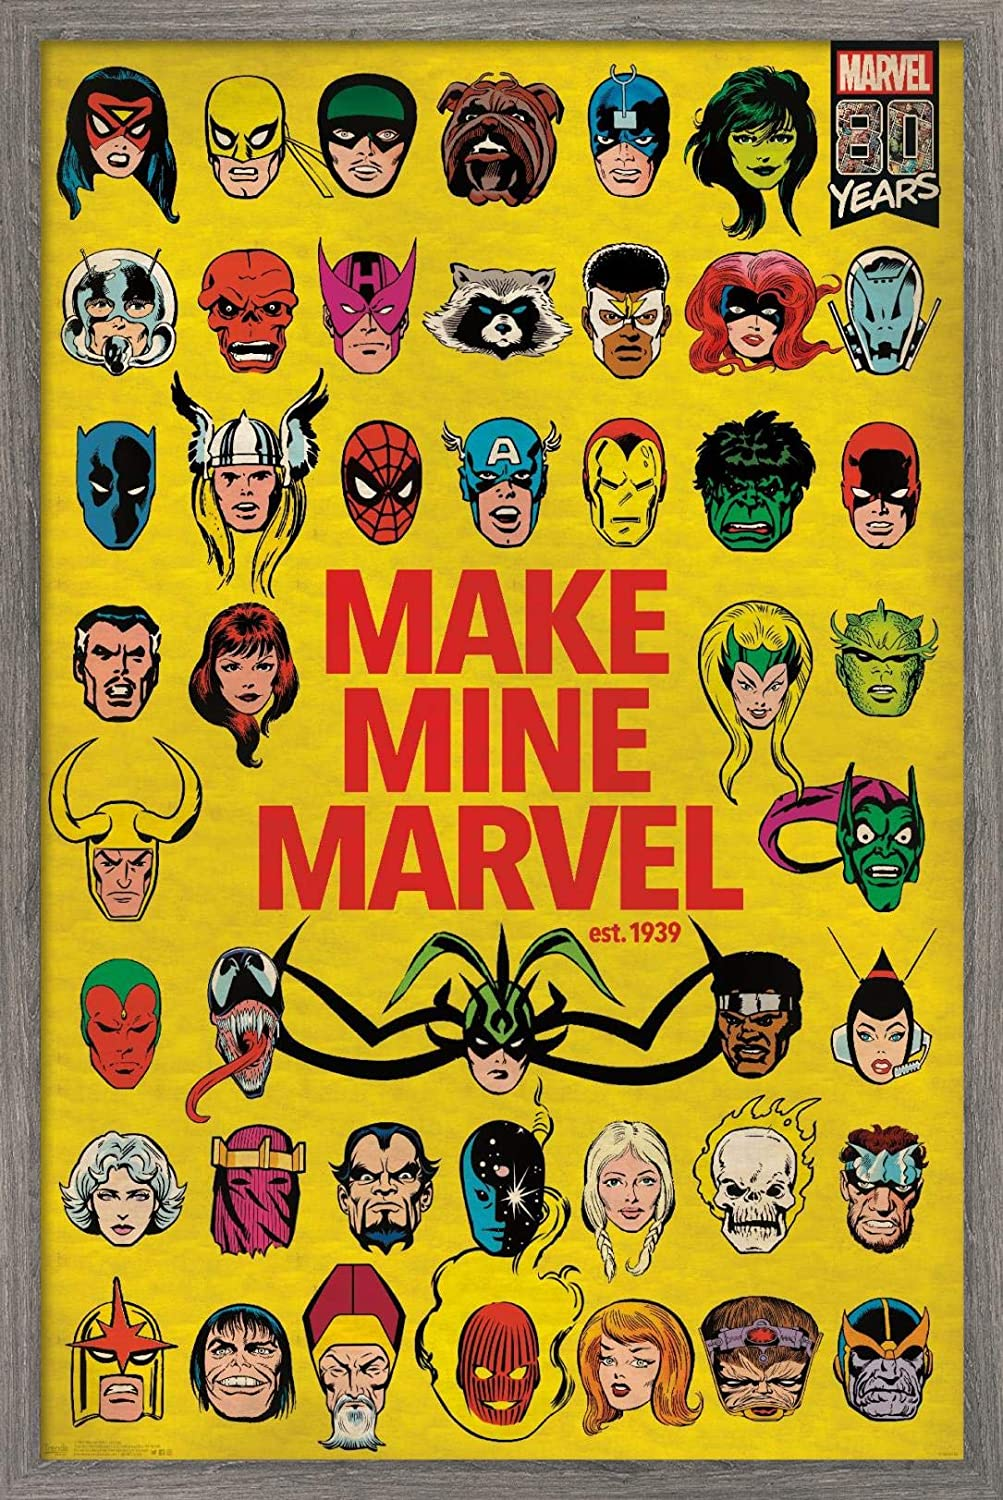 Trends International Comics-Marvel 80th P Anniversary-Group Las Vegas Mall Wall Safety and trust